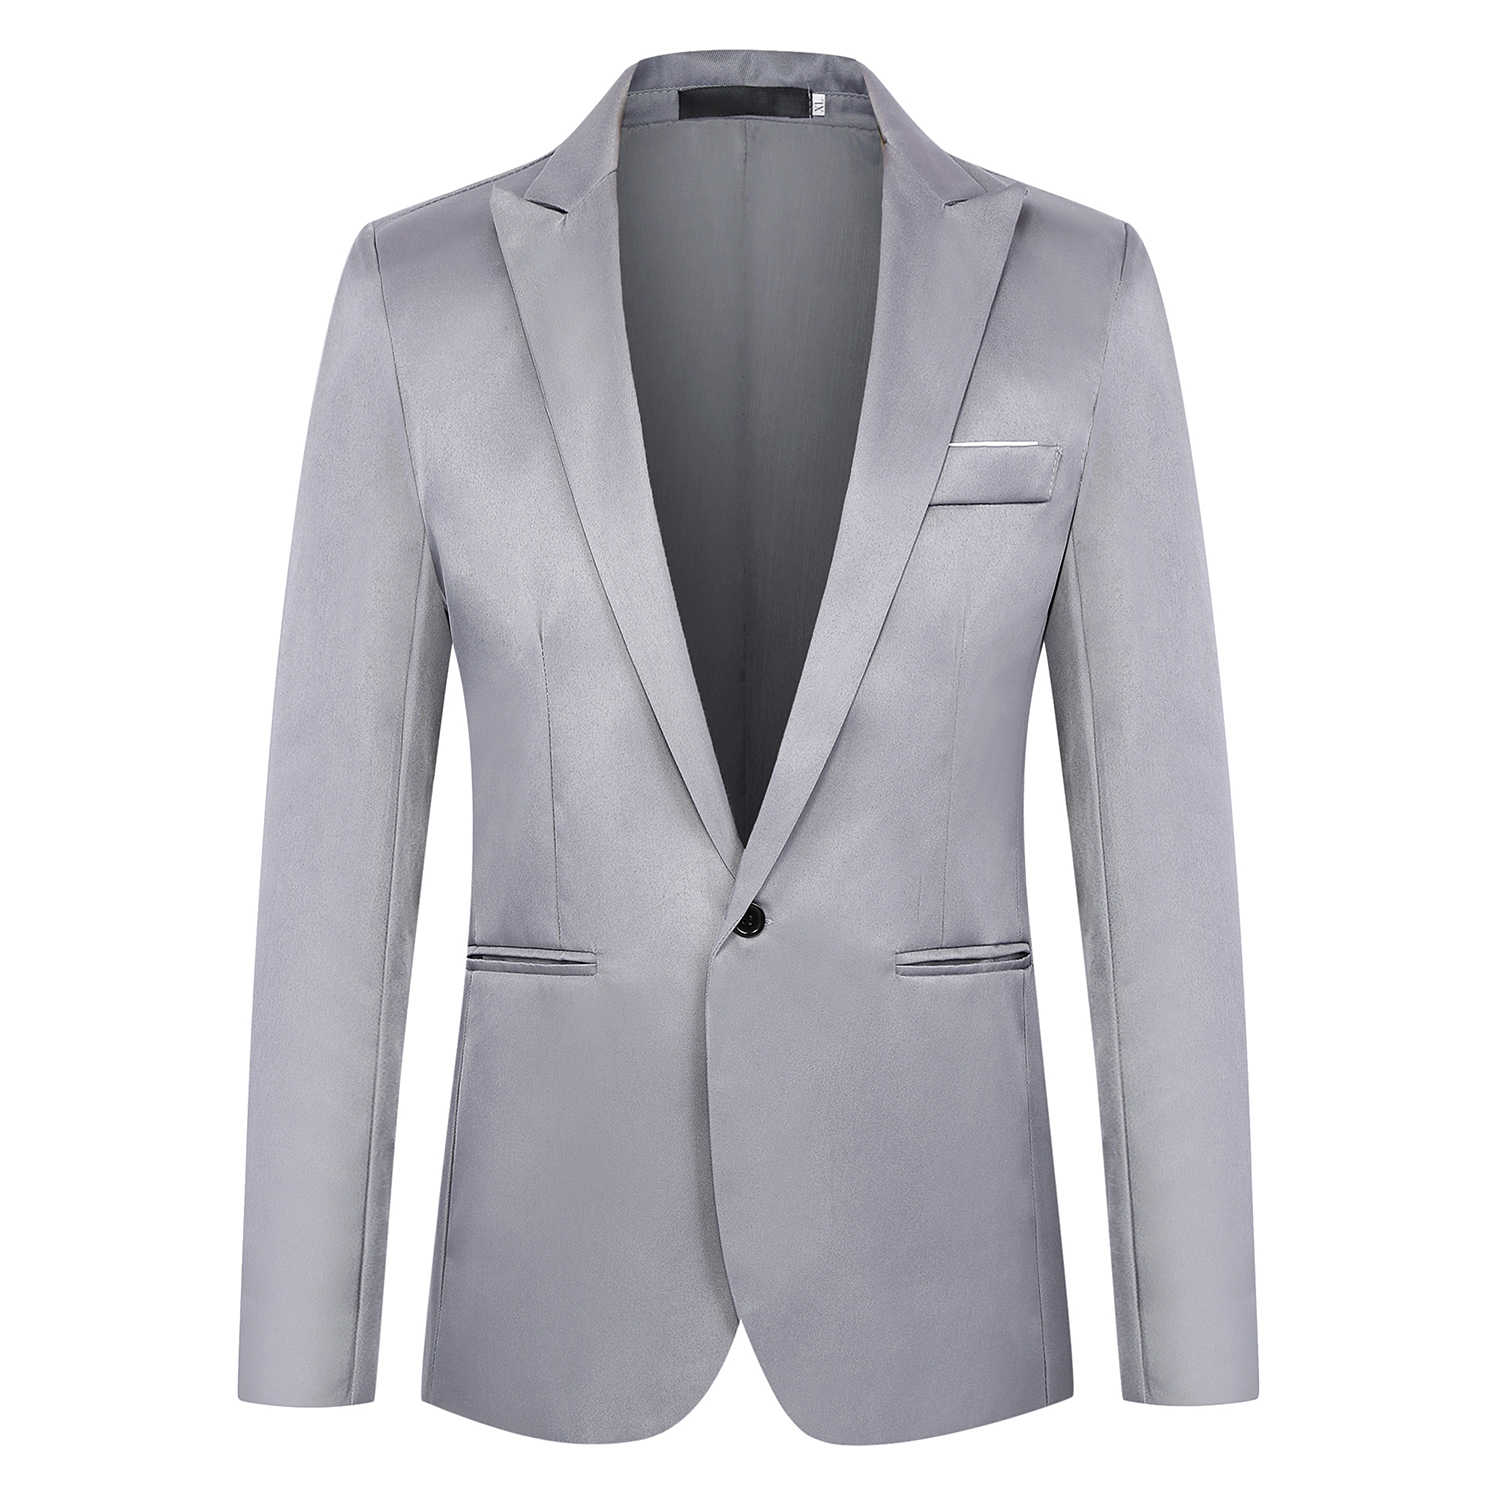 Fashion Brand Blazer British's Style casual Slim Fit suit jacket male Blazers men coat Plus Size 6XL CGU 88